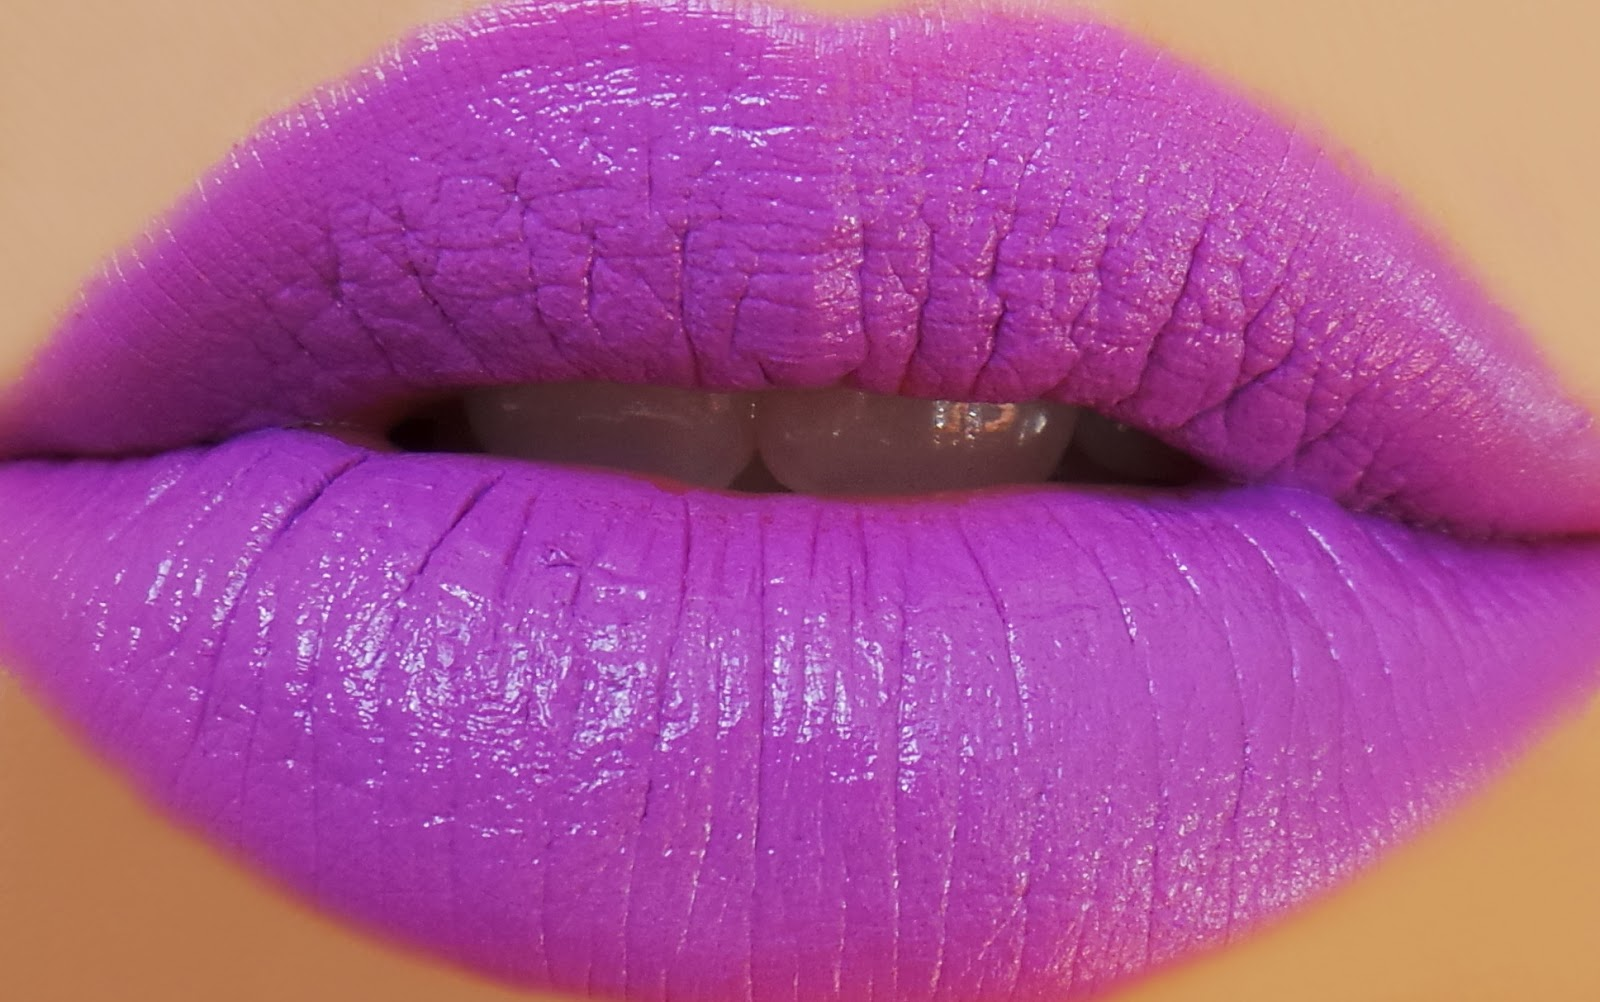 nyx violet lipstick images galleries with a bite. Black Bedroom Furniture Sets. Home Design Ideas